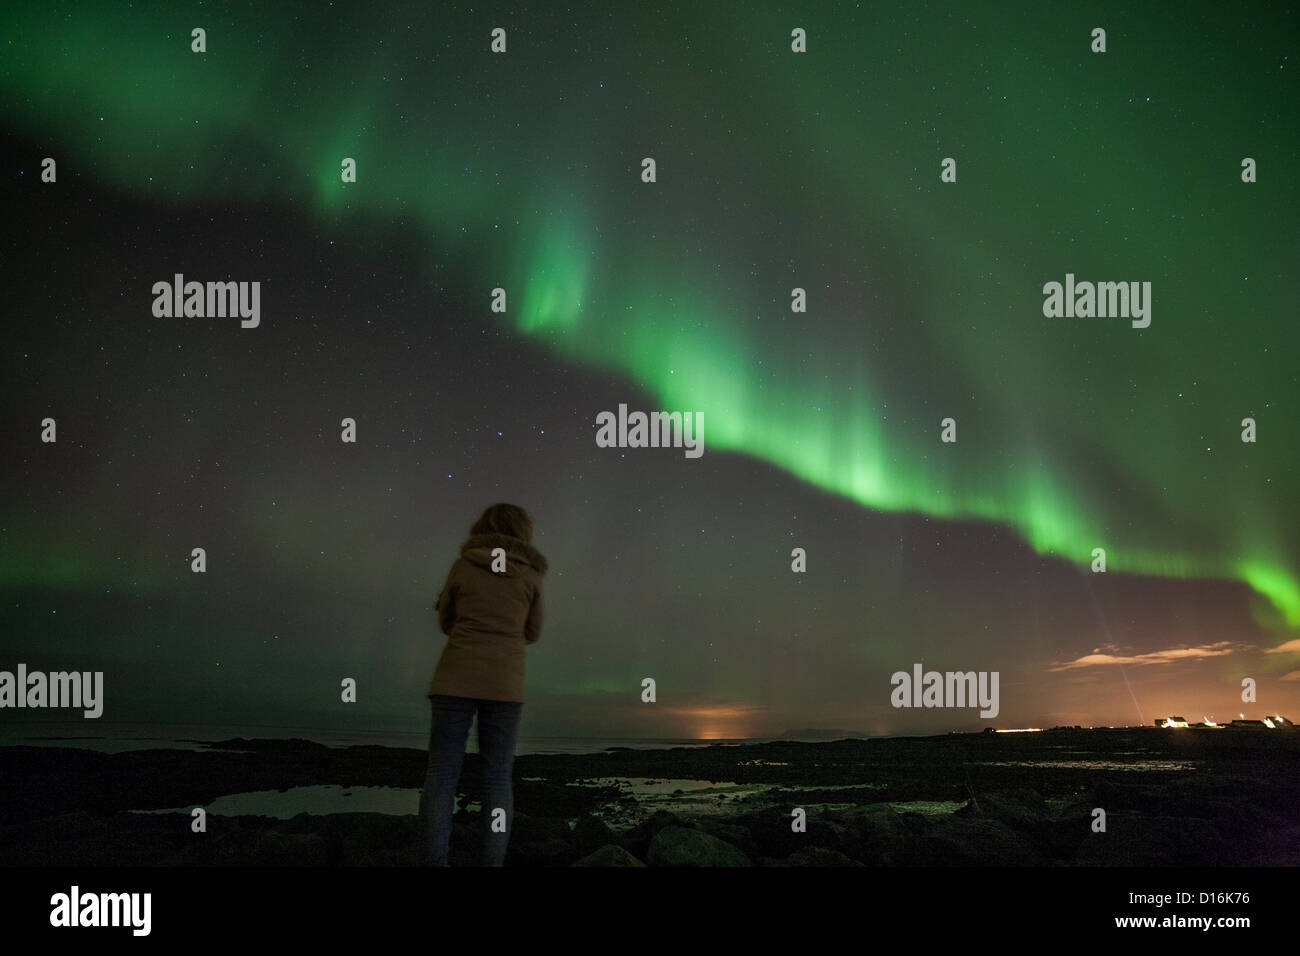 woman with her back to us, wearing jacket and jeans, watching the aurora borealis in iceland - Stock Image